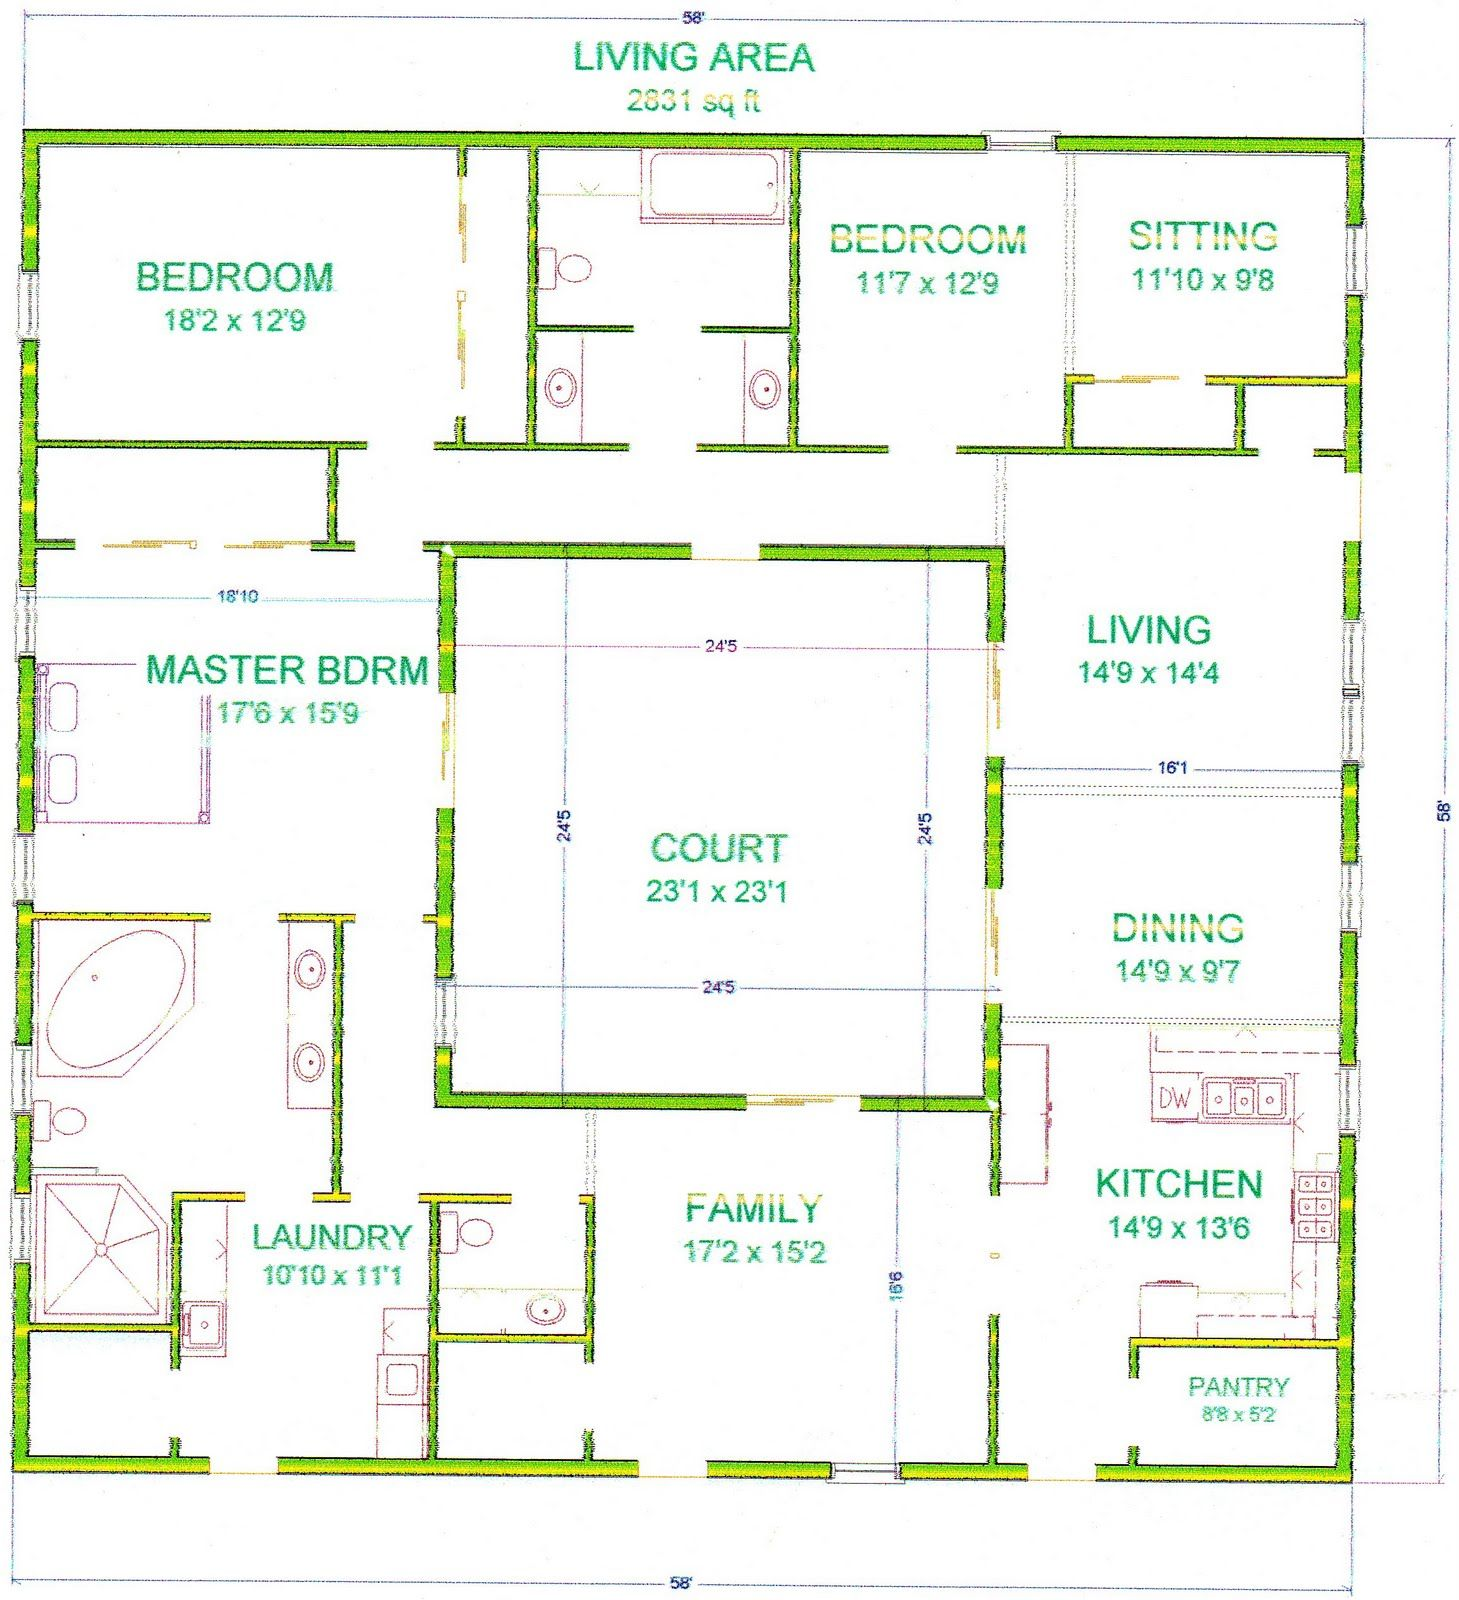 Square House Plans find this pin and more on house plans Center Courtyard House Plans With 2831 Square Feet This Is One Of My Bigger Houses